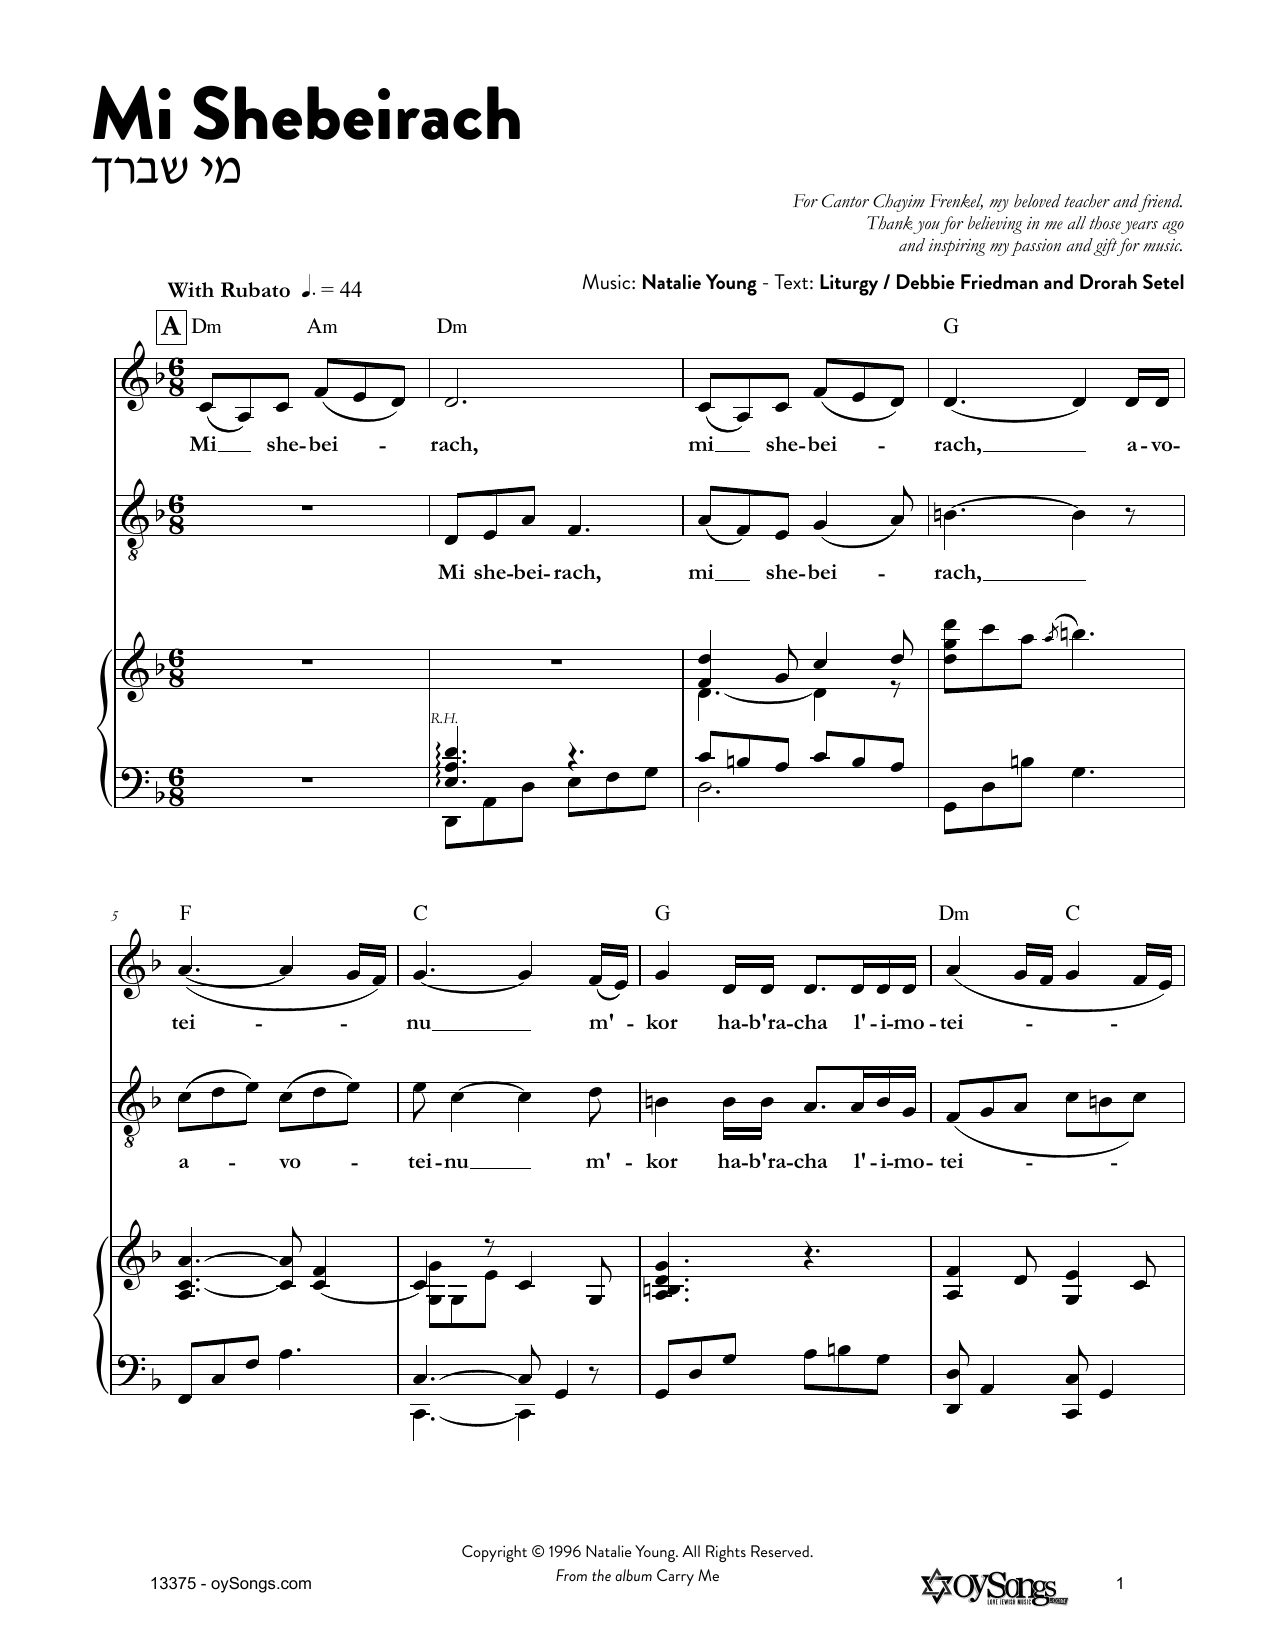 Mi Shebeirach Sheet Music